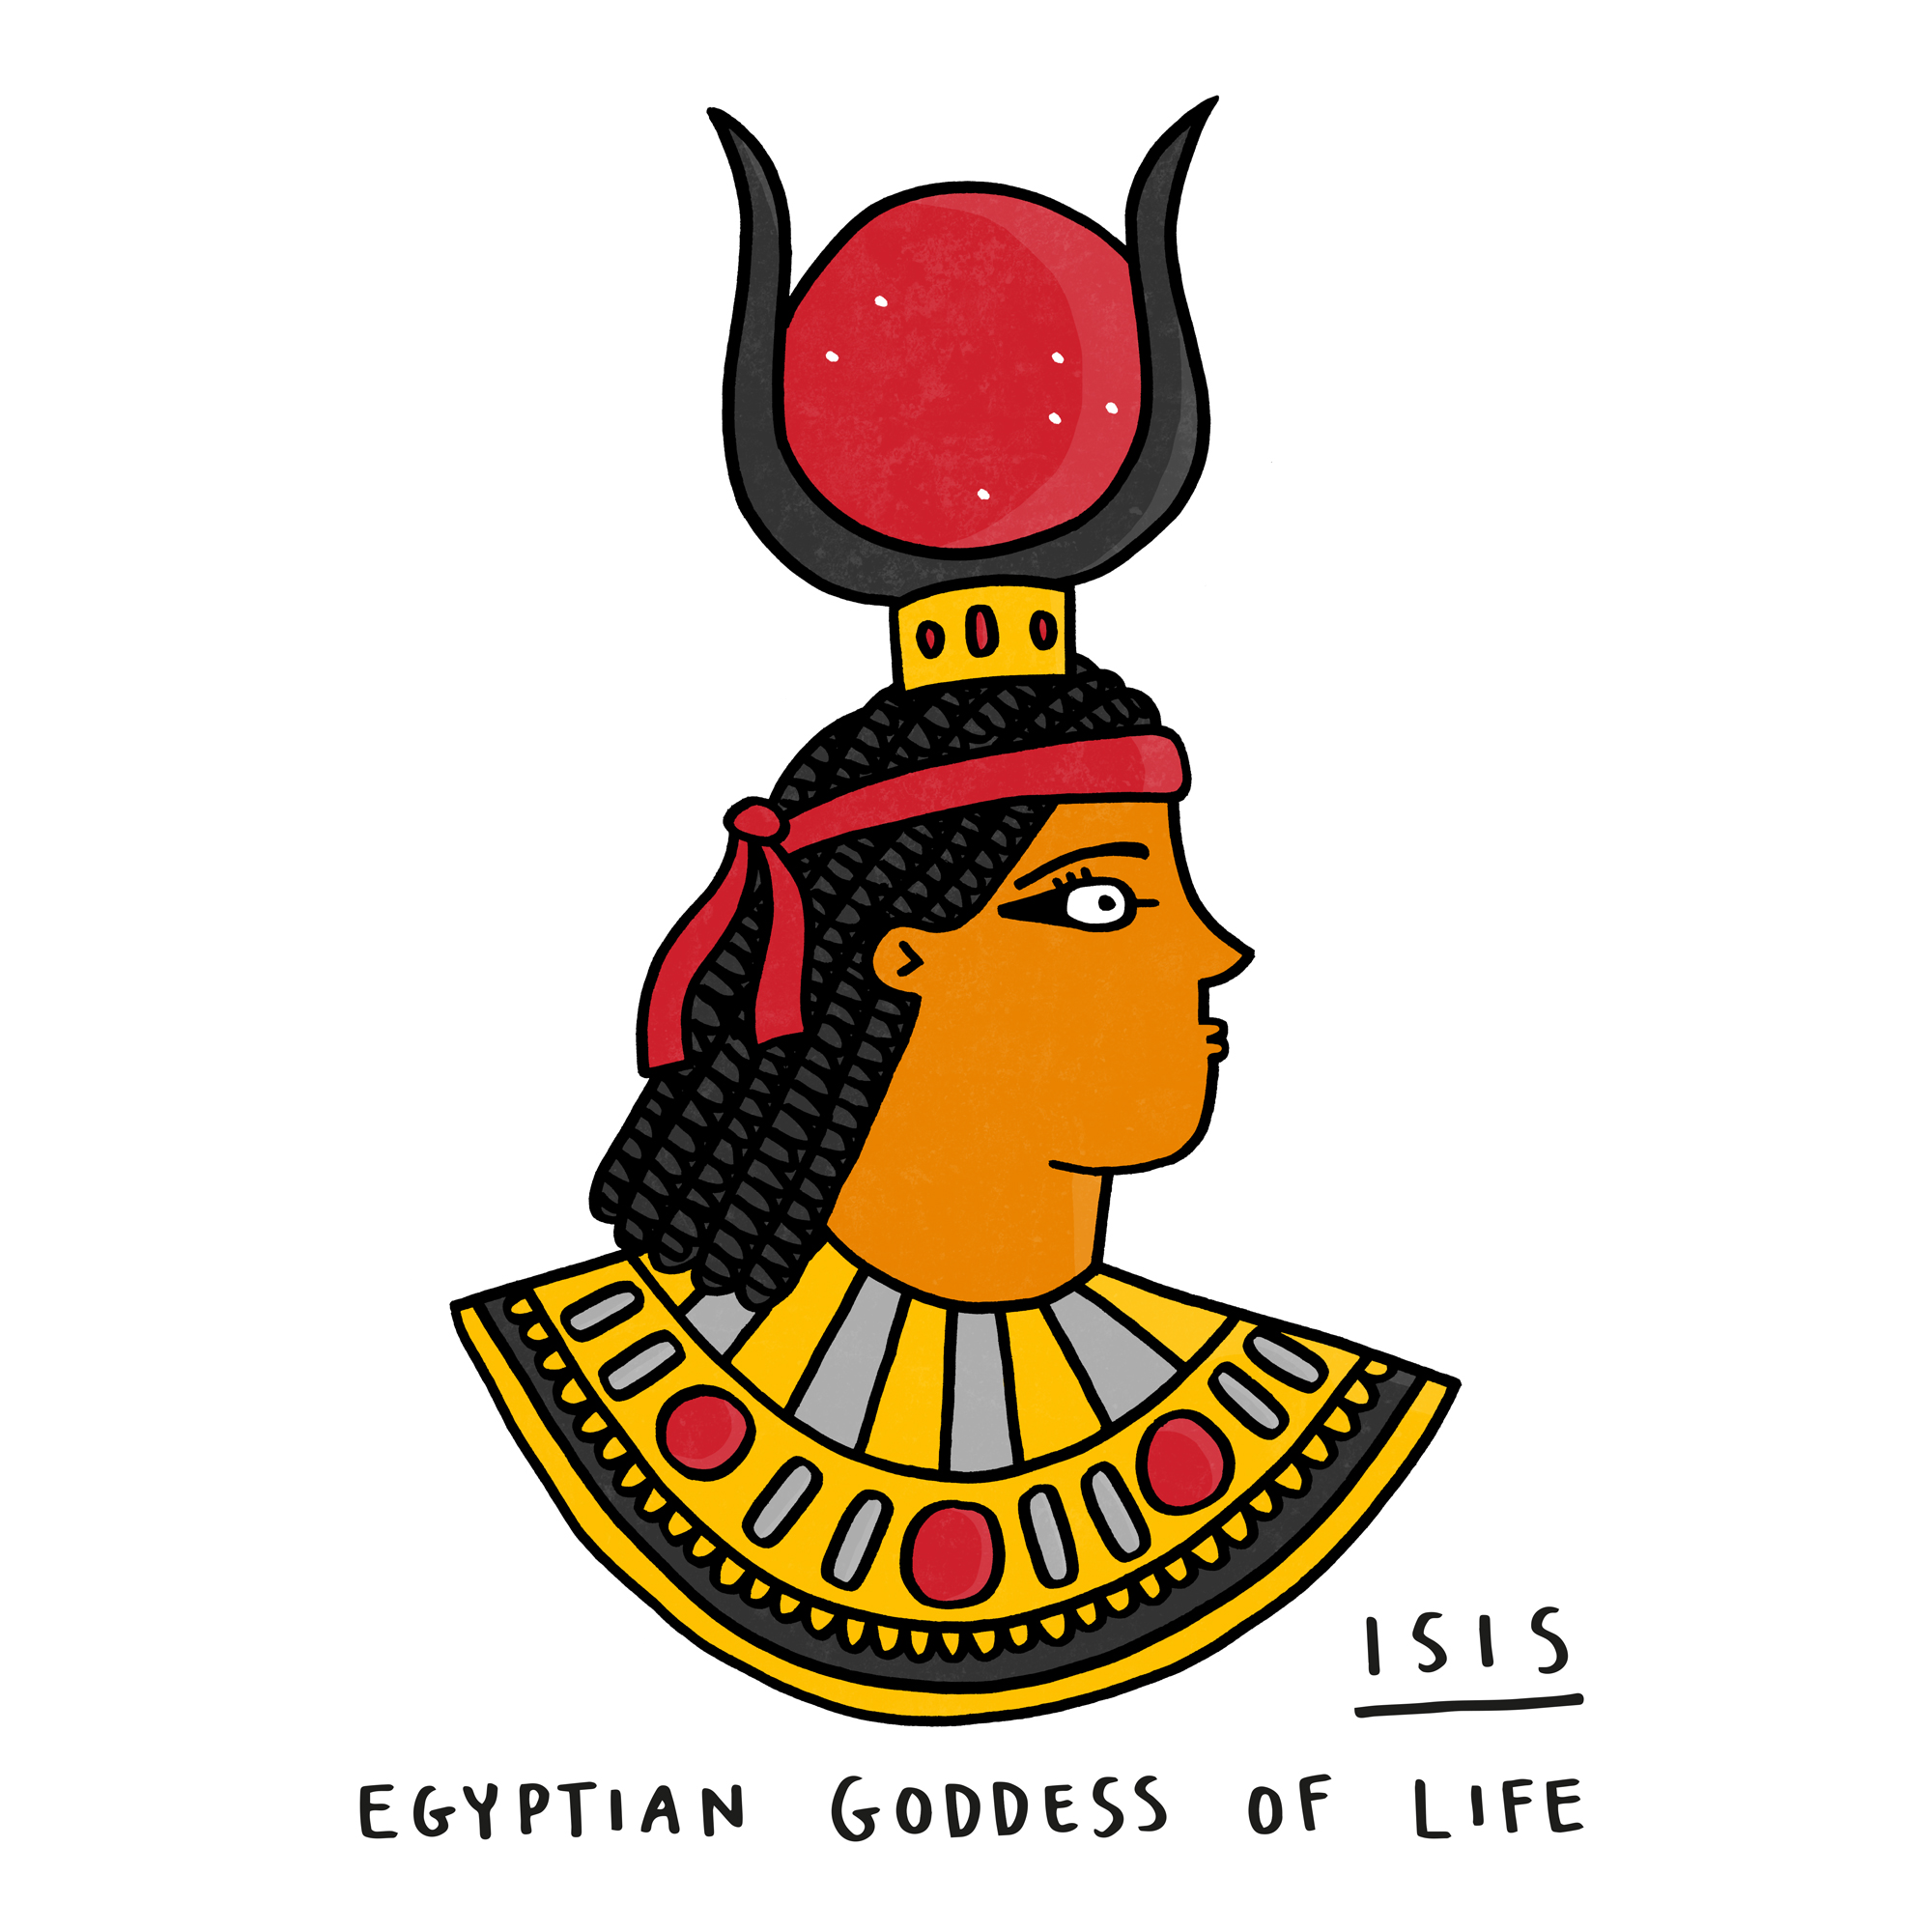 Cartoon of Isis, Egyptian Goddess of Life